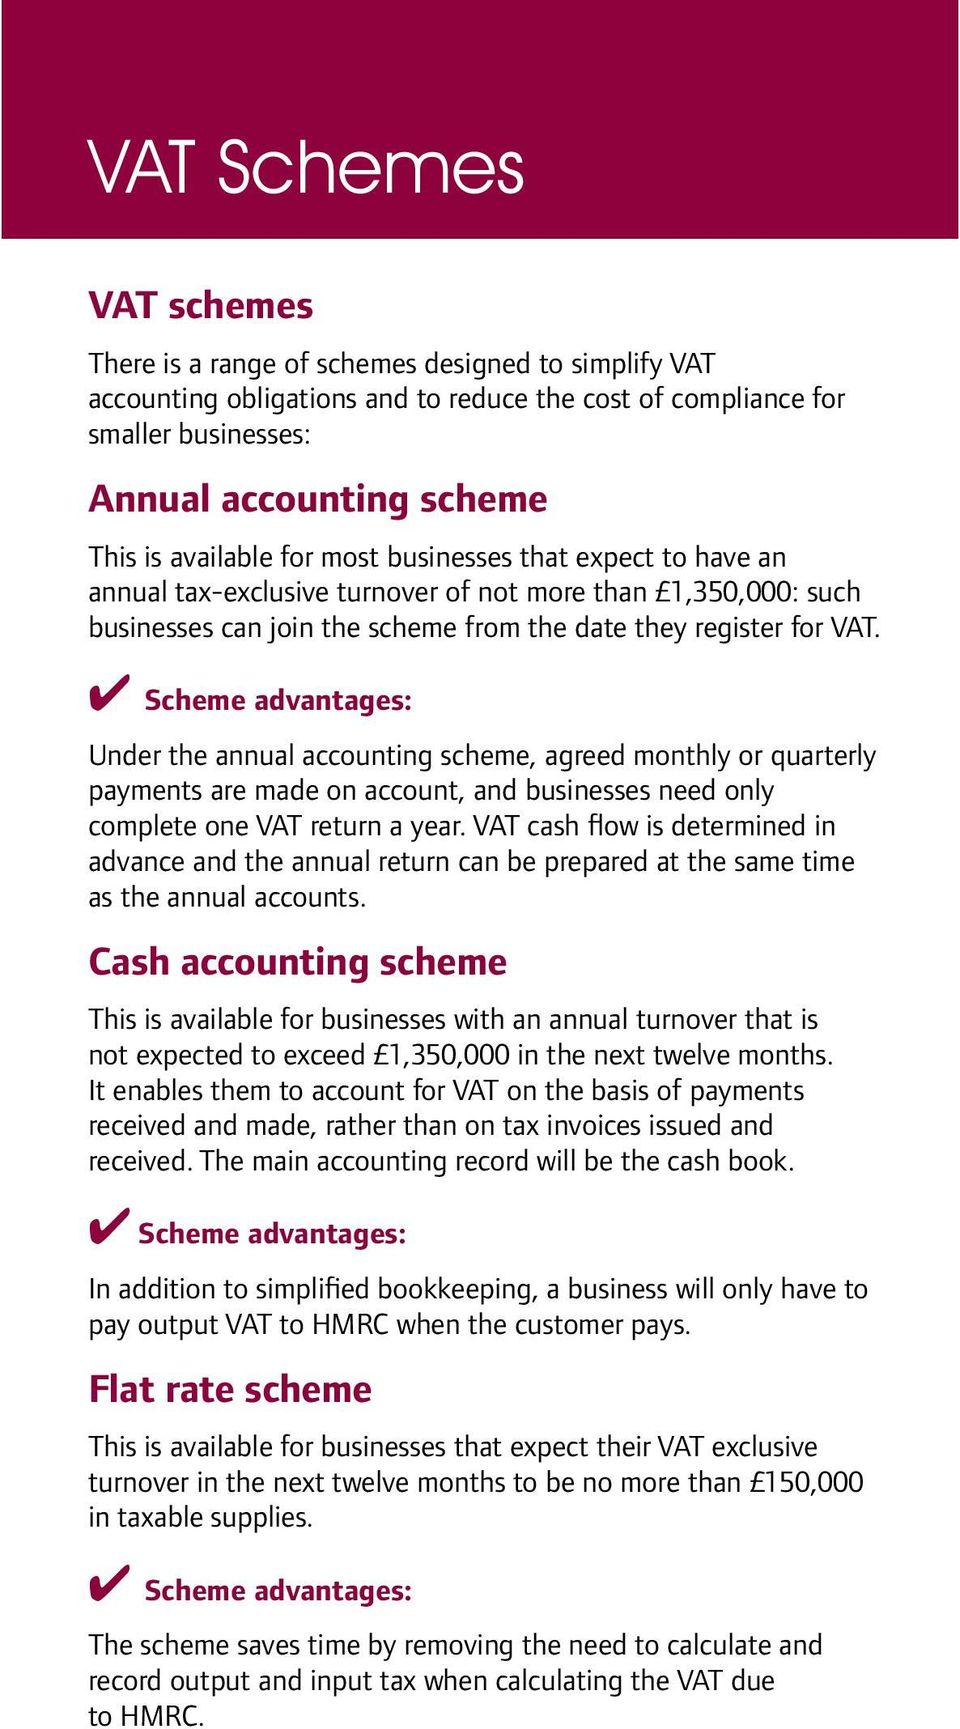 Scheme advantages: Under the annual accounting scheme, agreed monthly or quarterly payments are made on account, and businesses need only complete one VAT return a year.